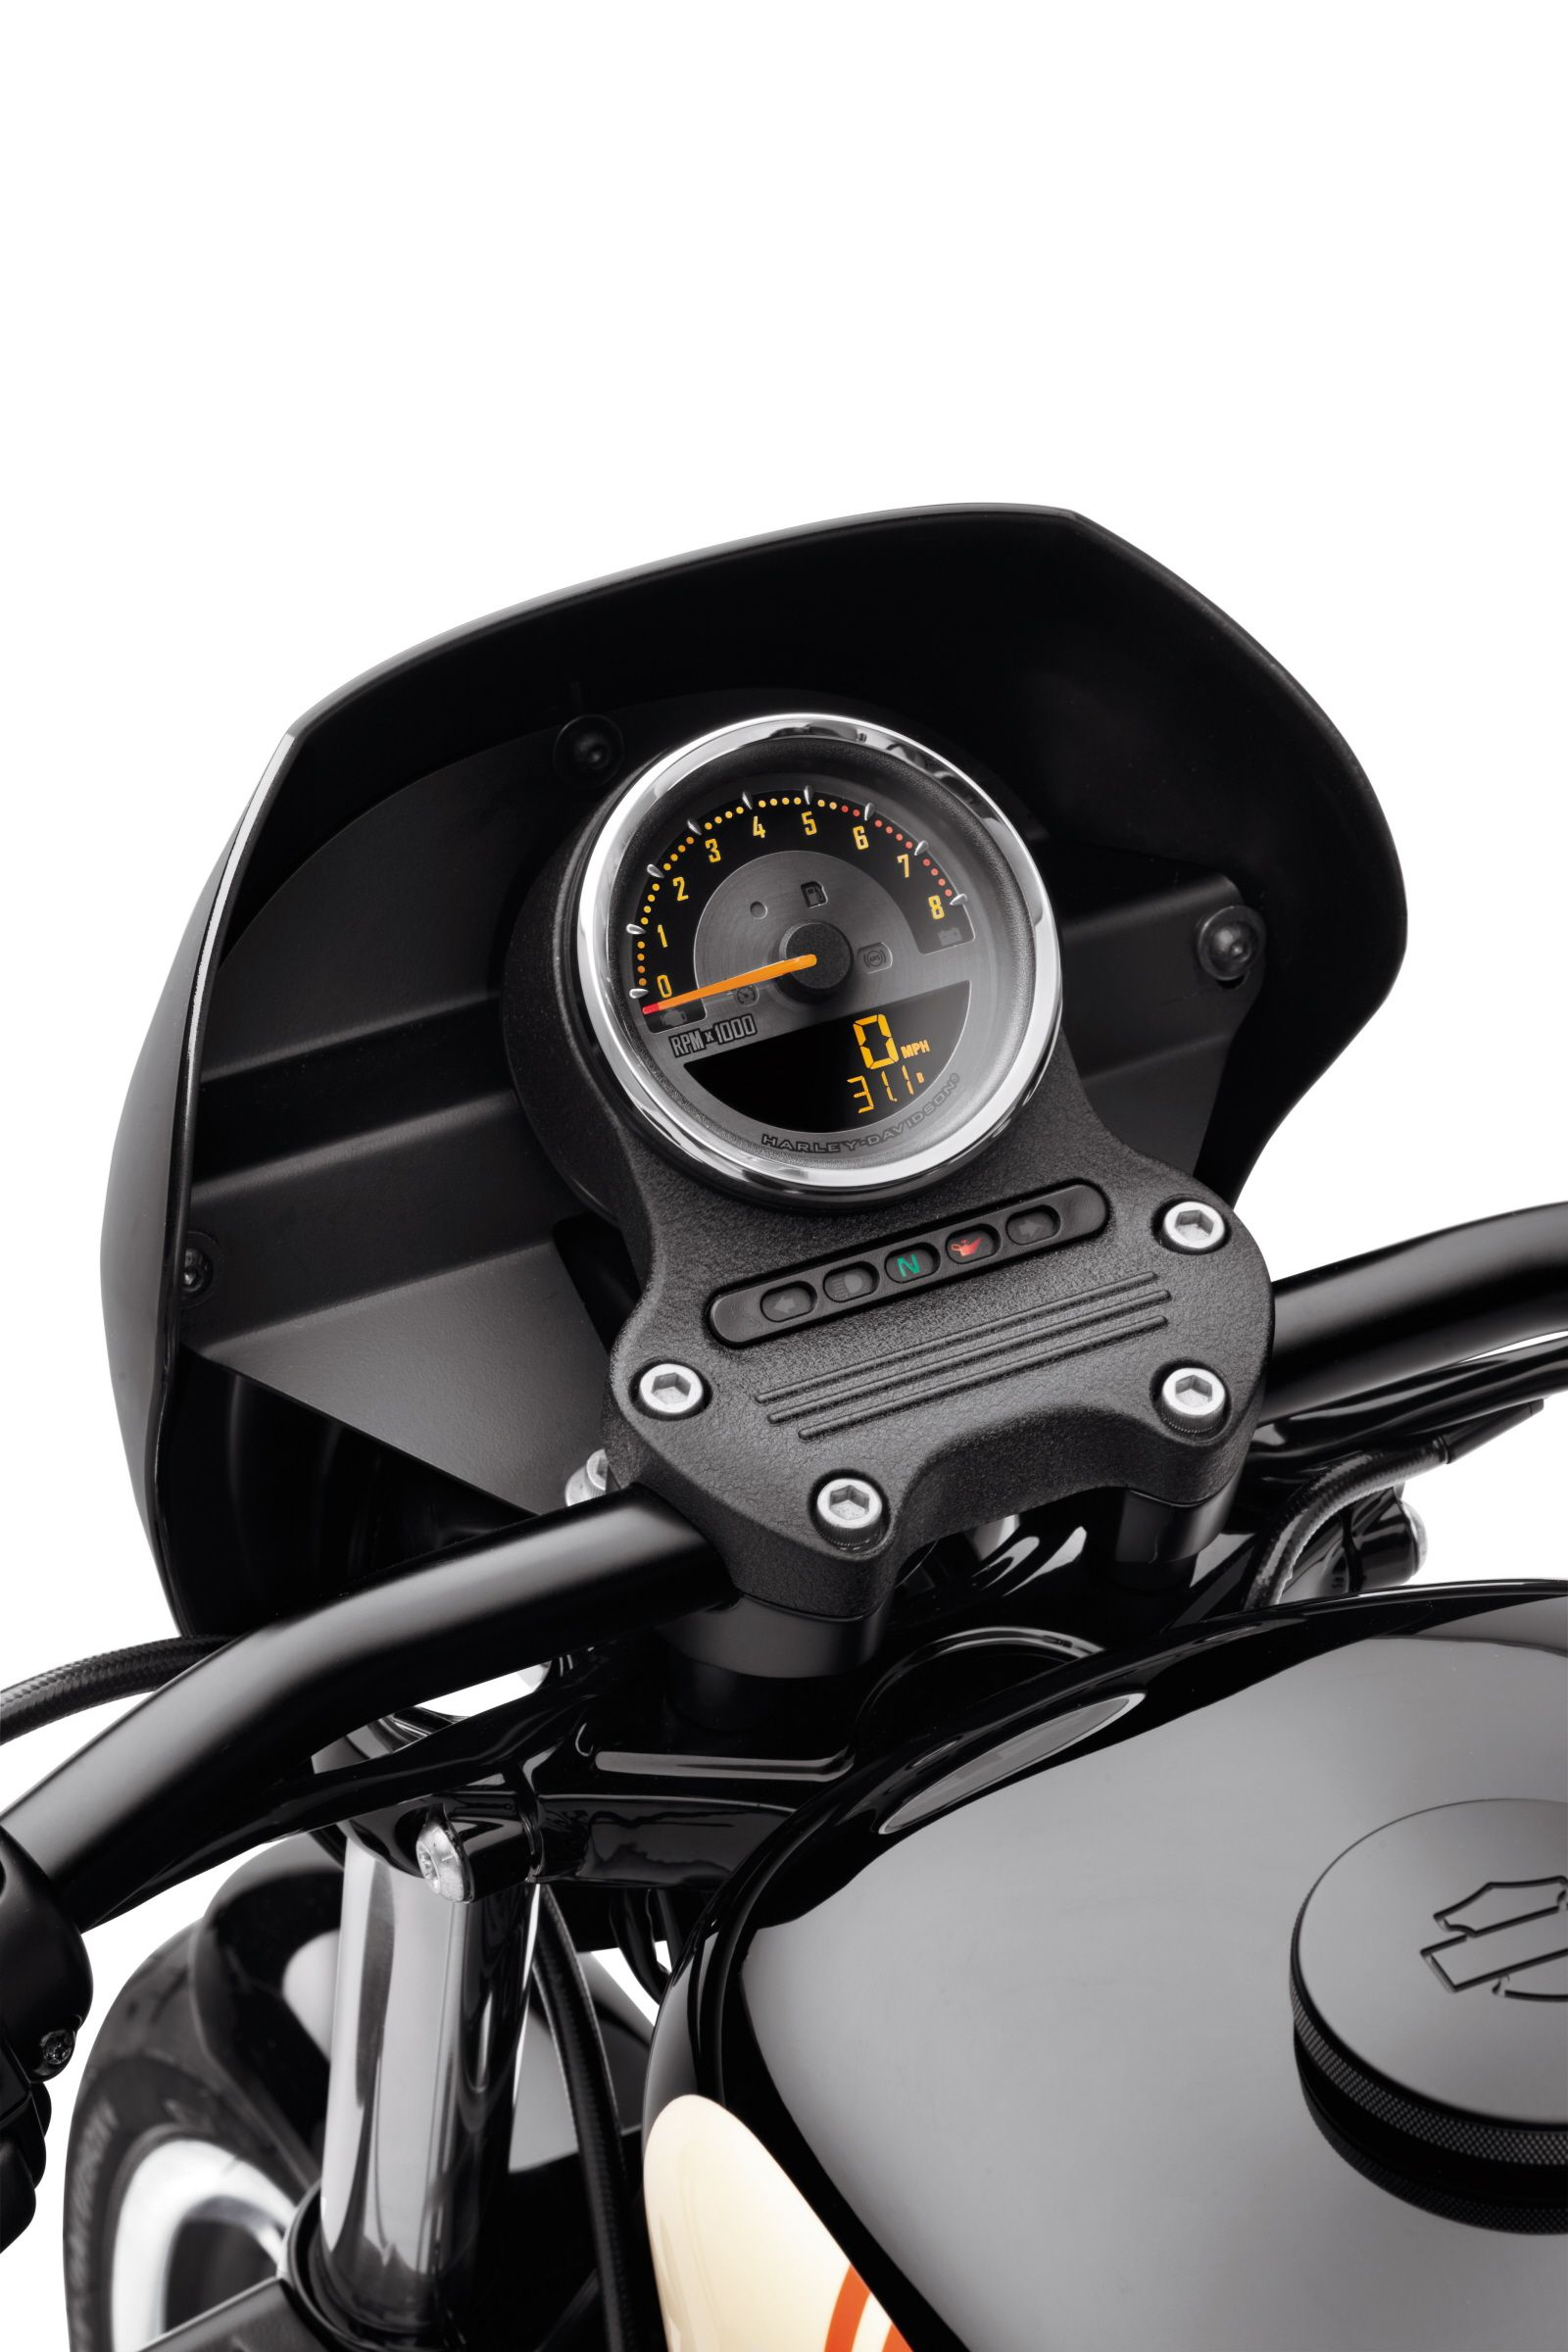 hight resolution of  fuel level and gear position without adding additional handlebar mounted gauges harley davidson combination digital speedometer analog tachometer